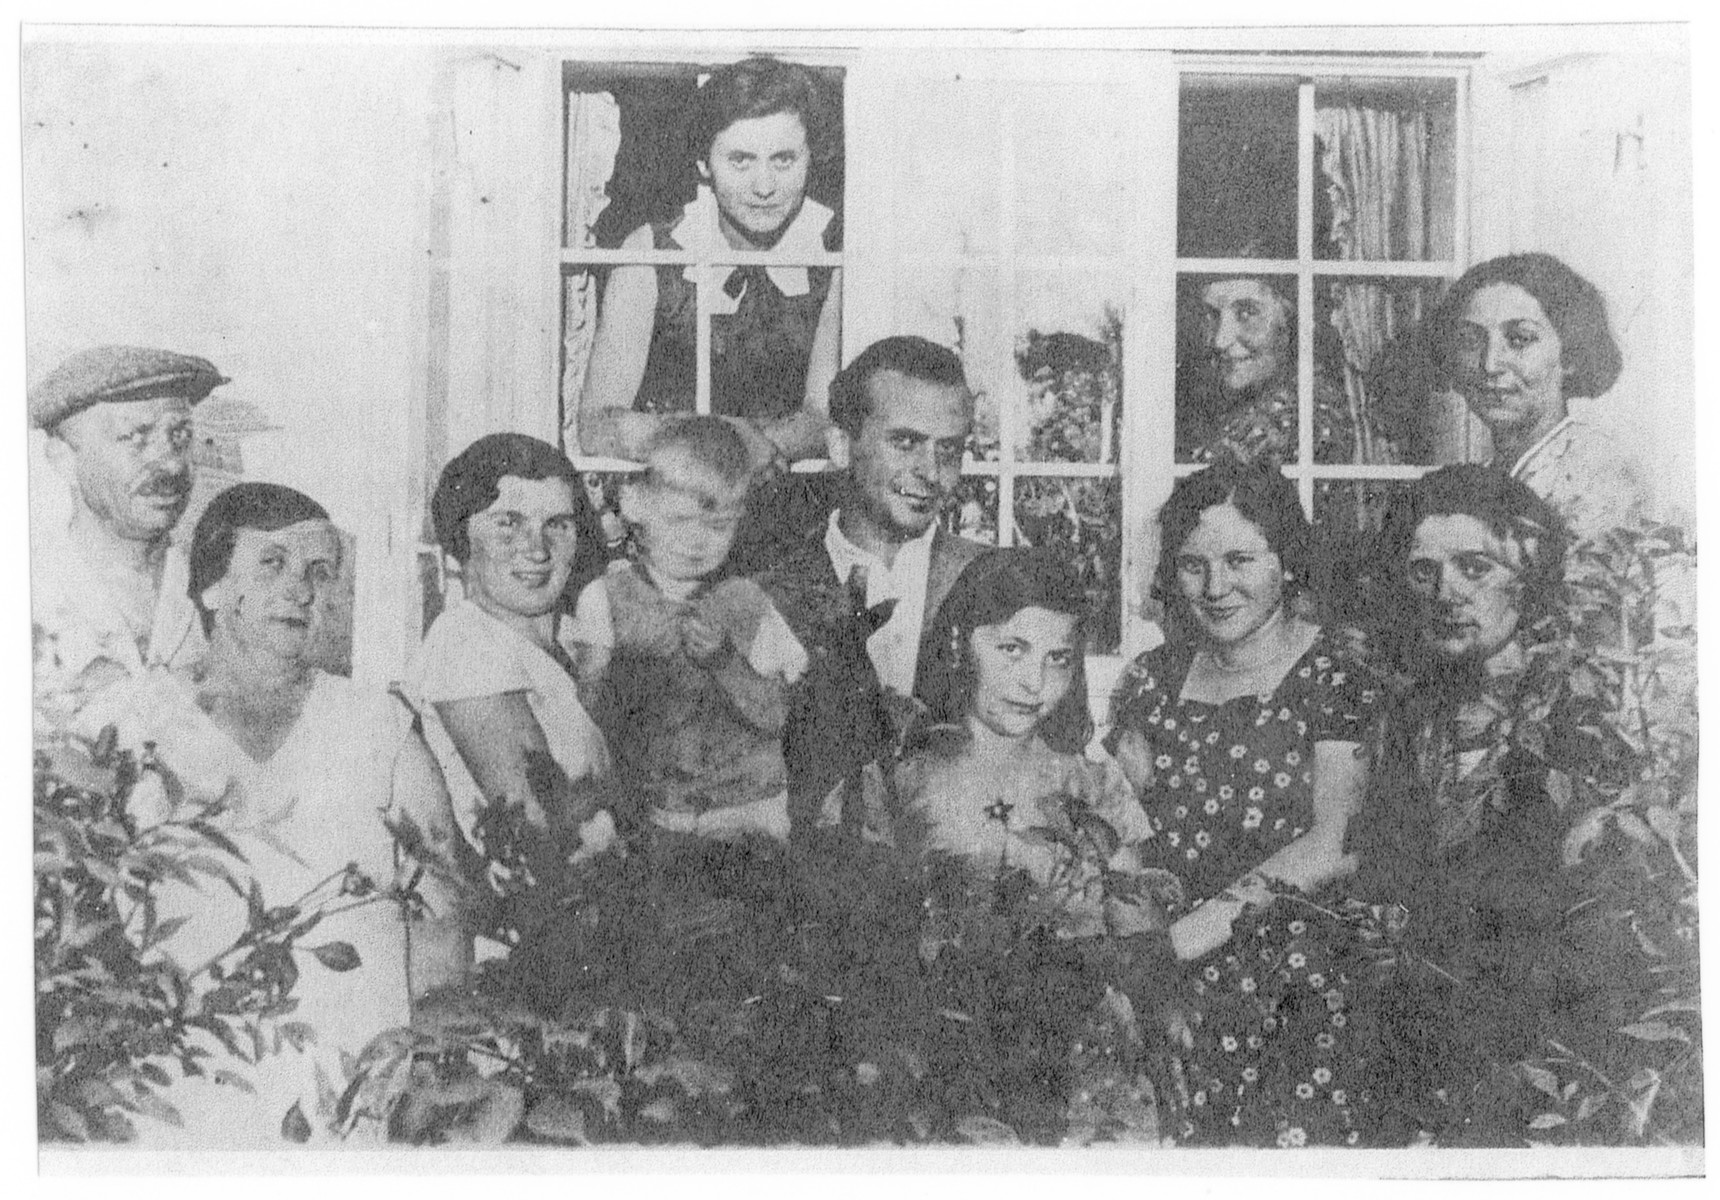 Group portrait of relatives of Stefania Ungar in her parents' home in Bolchowka.  Her sister Irka is third from the left.  Nex to her is Adam.  Her sister Jula is looking through the window.  Stefania is in the front, right.  Her sister Lucia is behind her and her mother Zosia is looking out the window on the right.